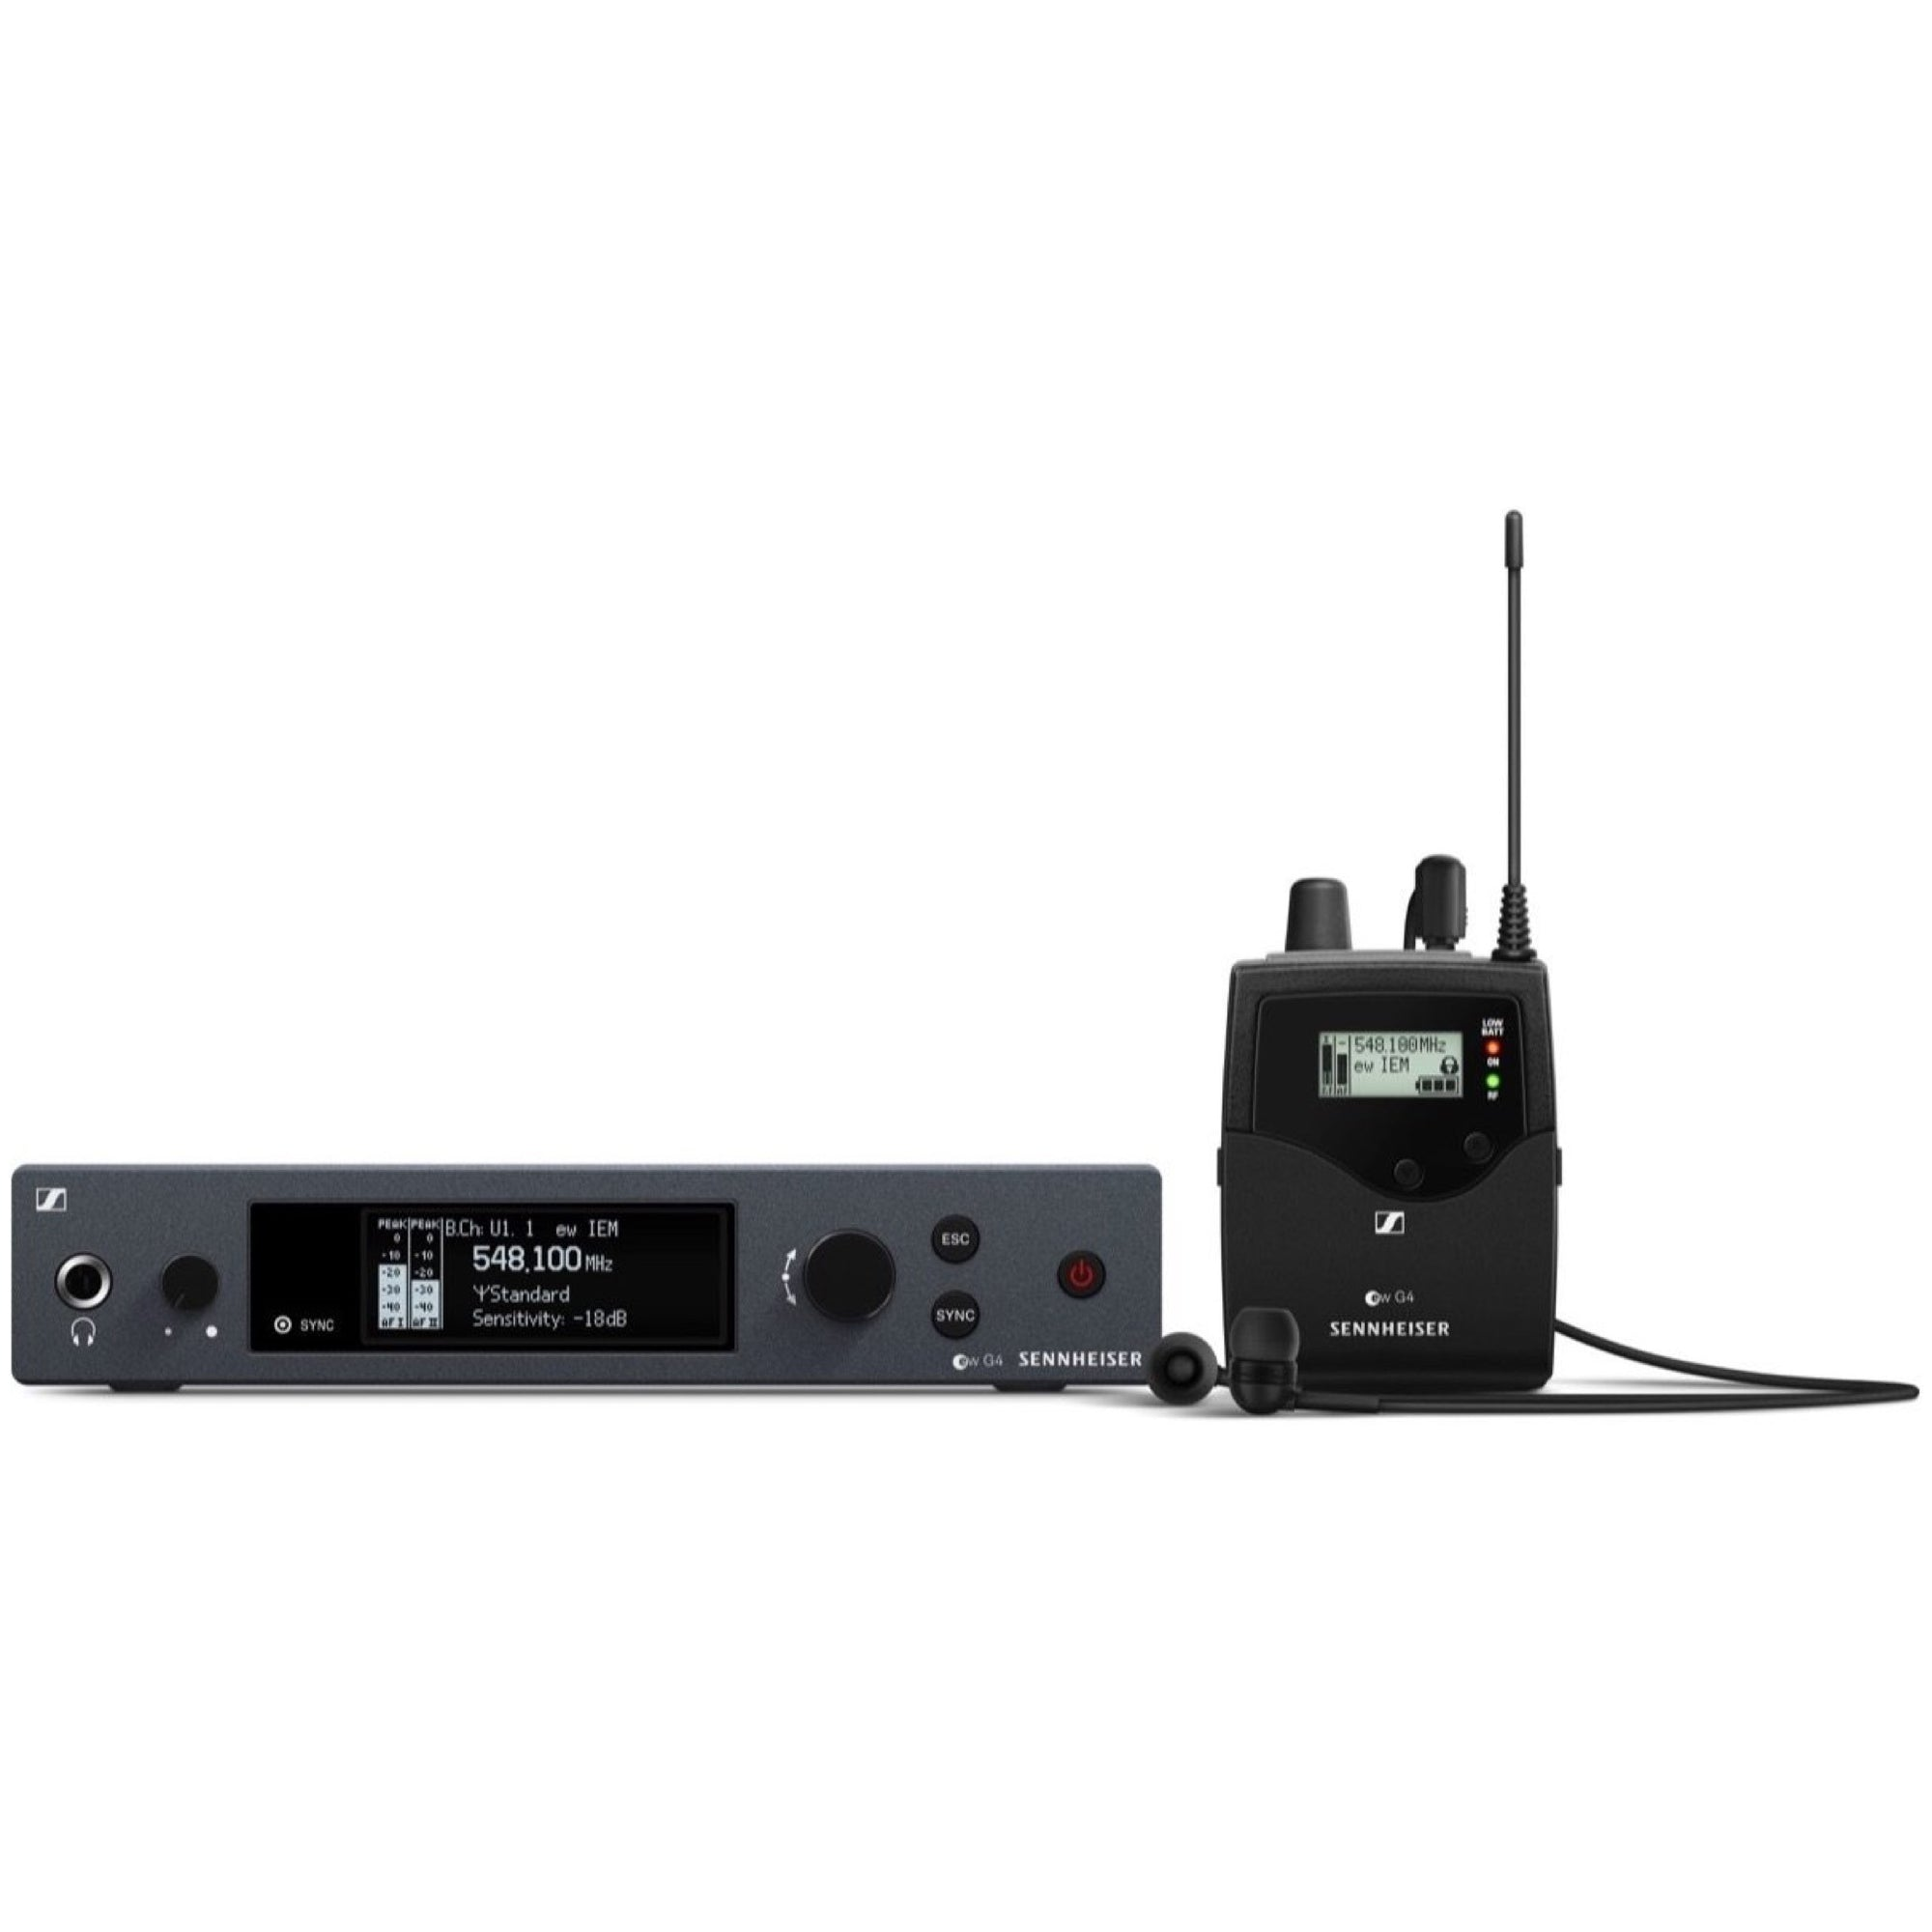 Sennheiser EW IEM G4 Wireless In-Ear Monitor System, Band A1 (470-516 MHz)